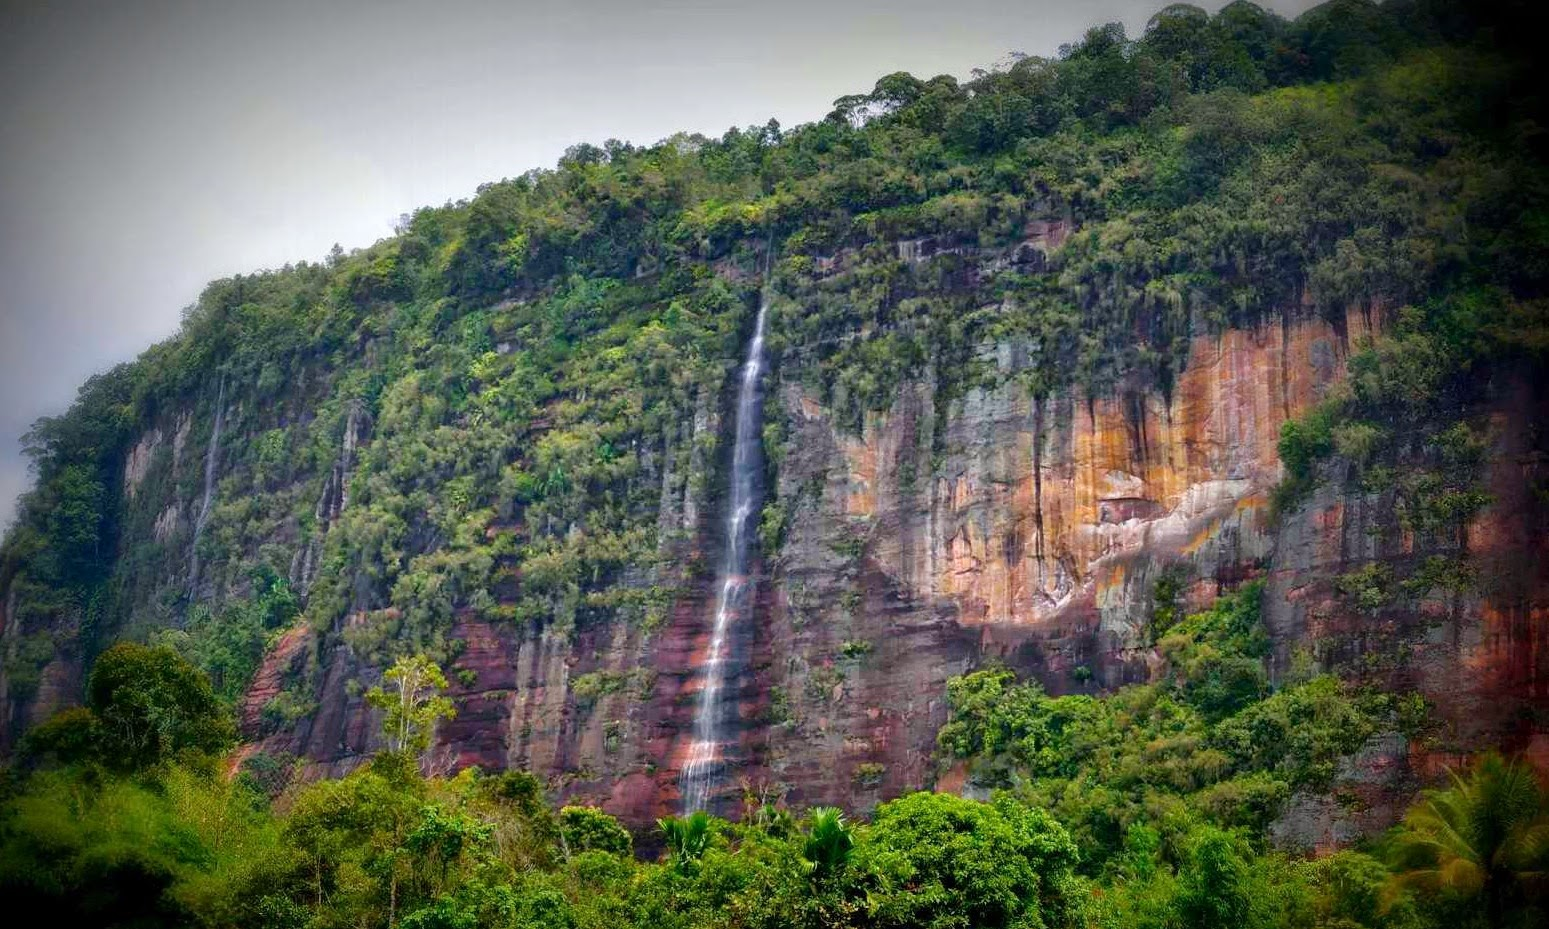 Sarasah Bunta Waterfall in harau cliff